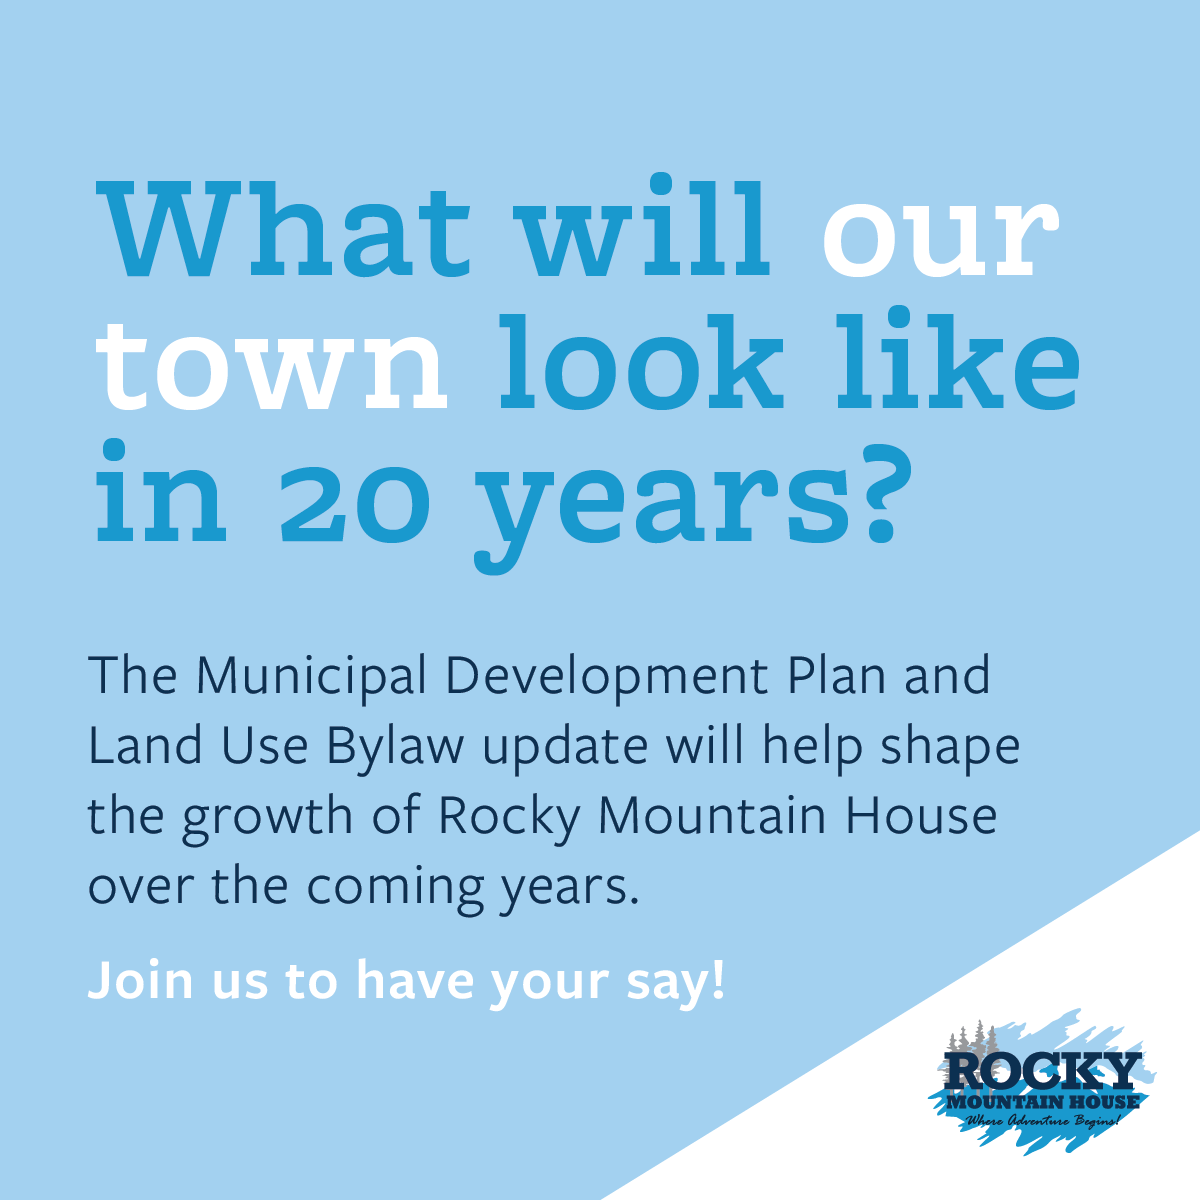 You are invited to comment on Rocky Mountain House Municipal Development Plan and Land Use Bylaw Updates